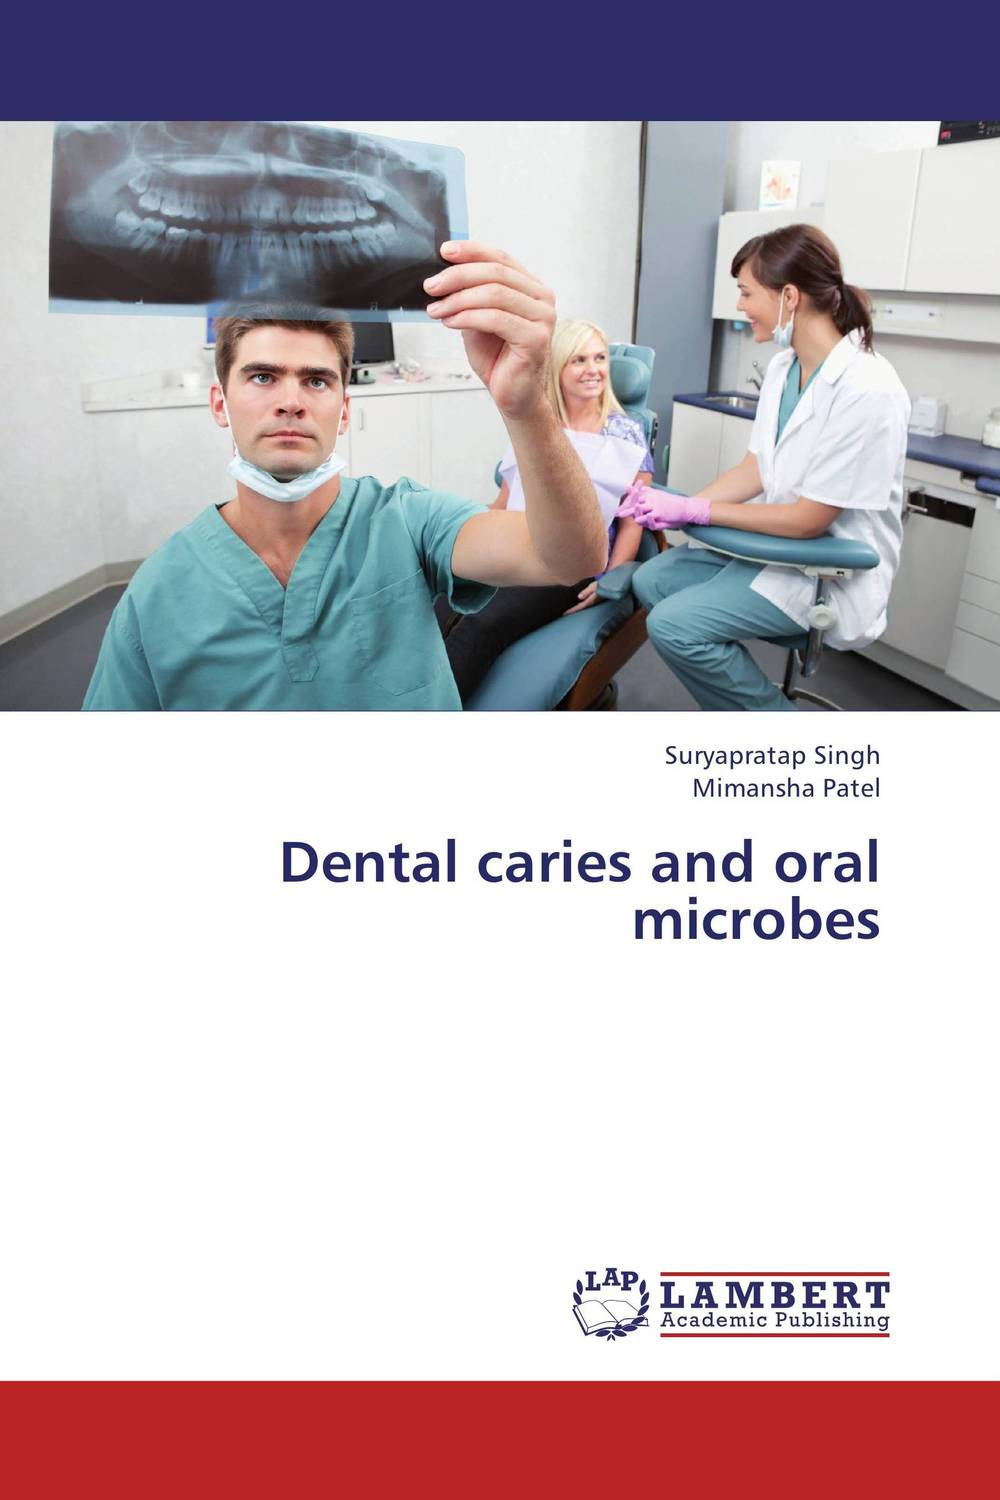 Dental caries and oral microbes karanprakash singh ramanpreet kaur bhullar and sumit kochhar forensic dentistry teeth and their secrets